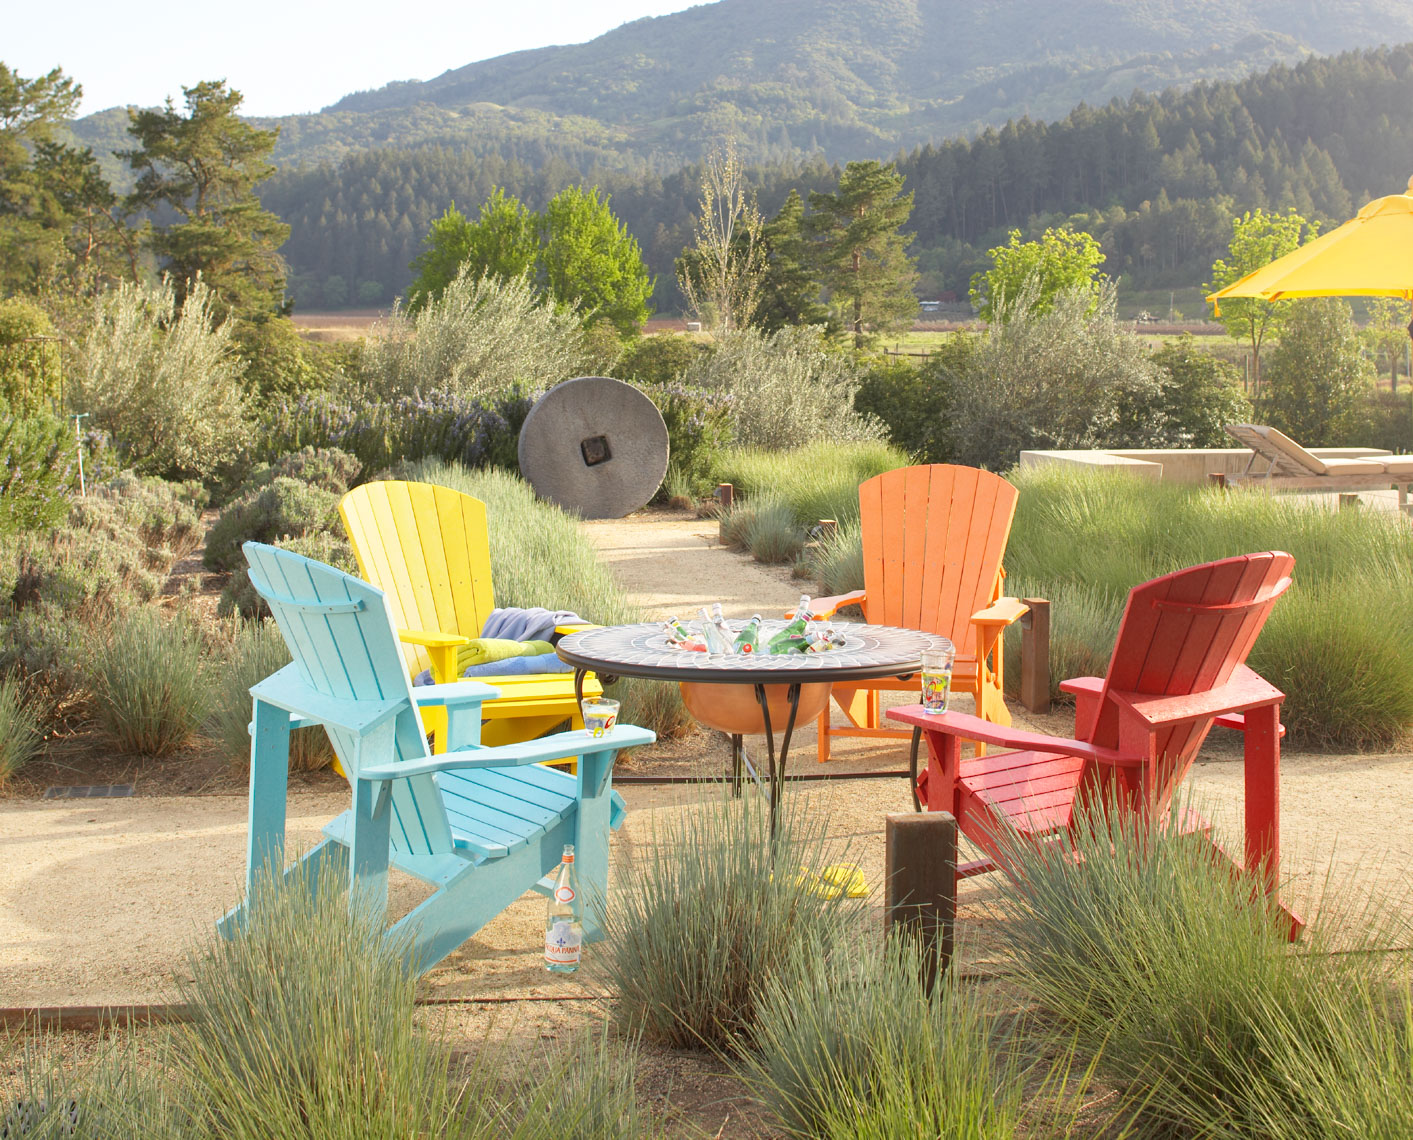 4 colorful adirondack chairs in wine country landscape